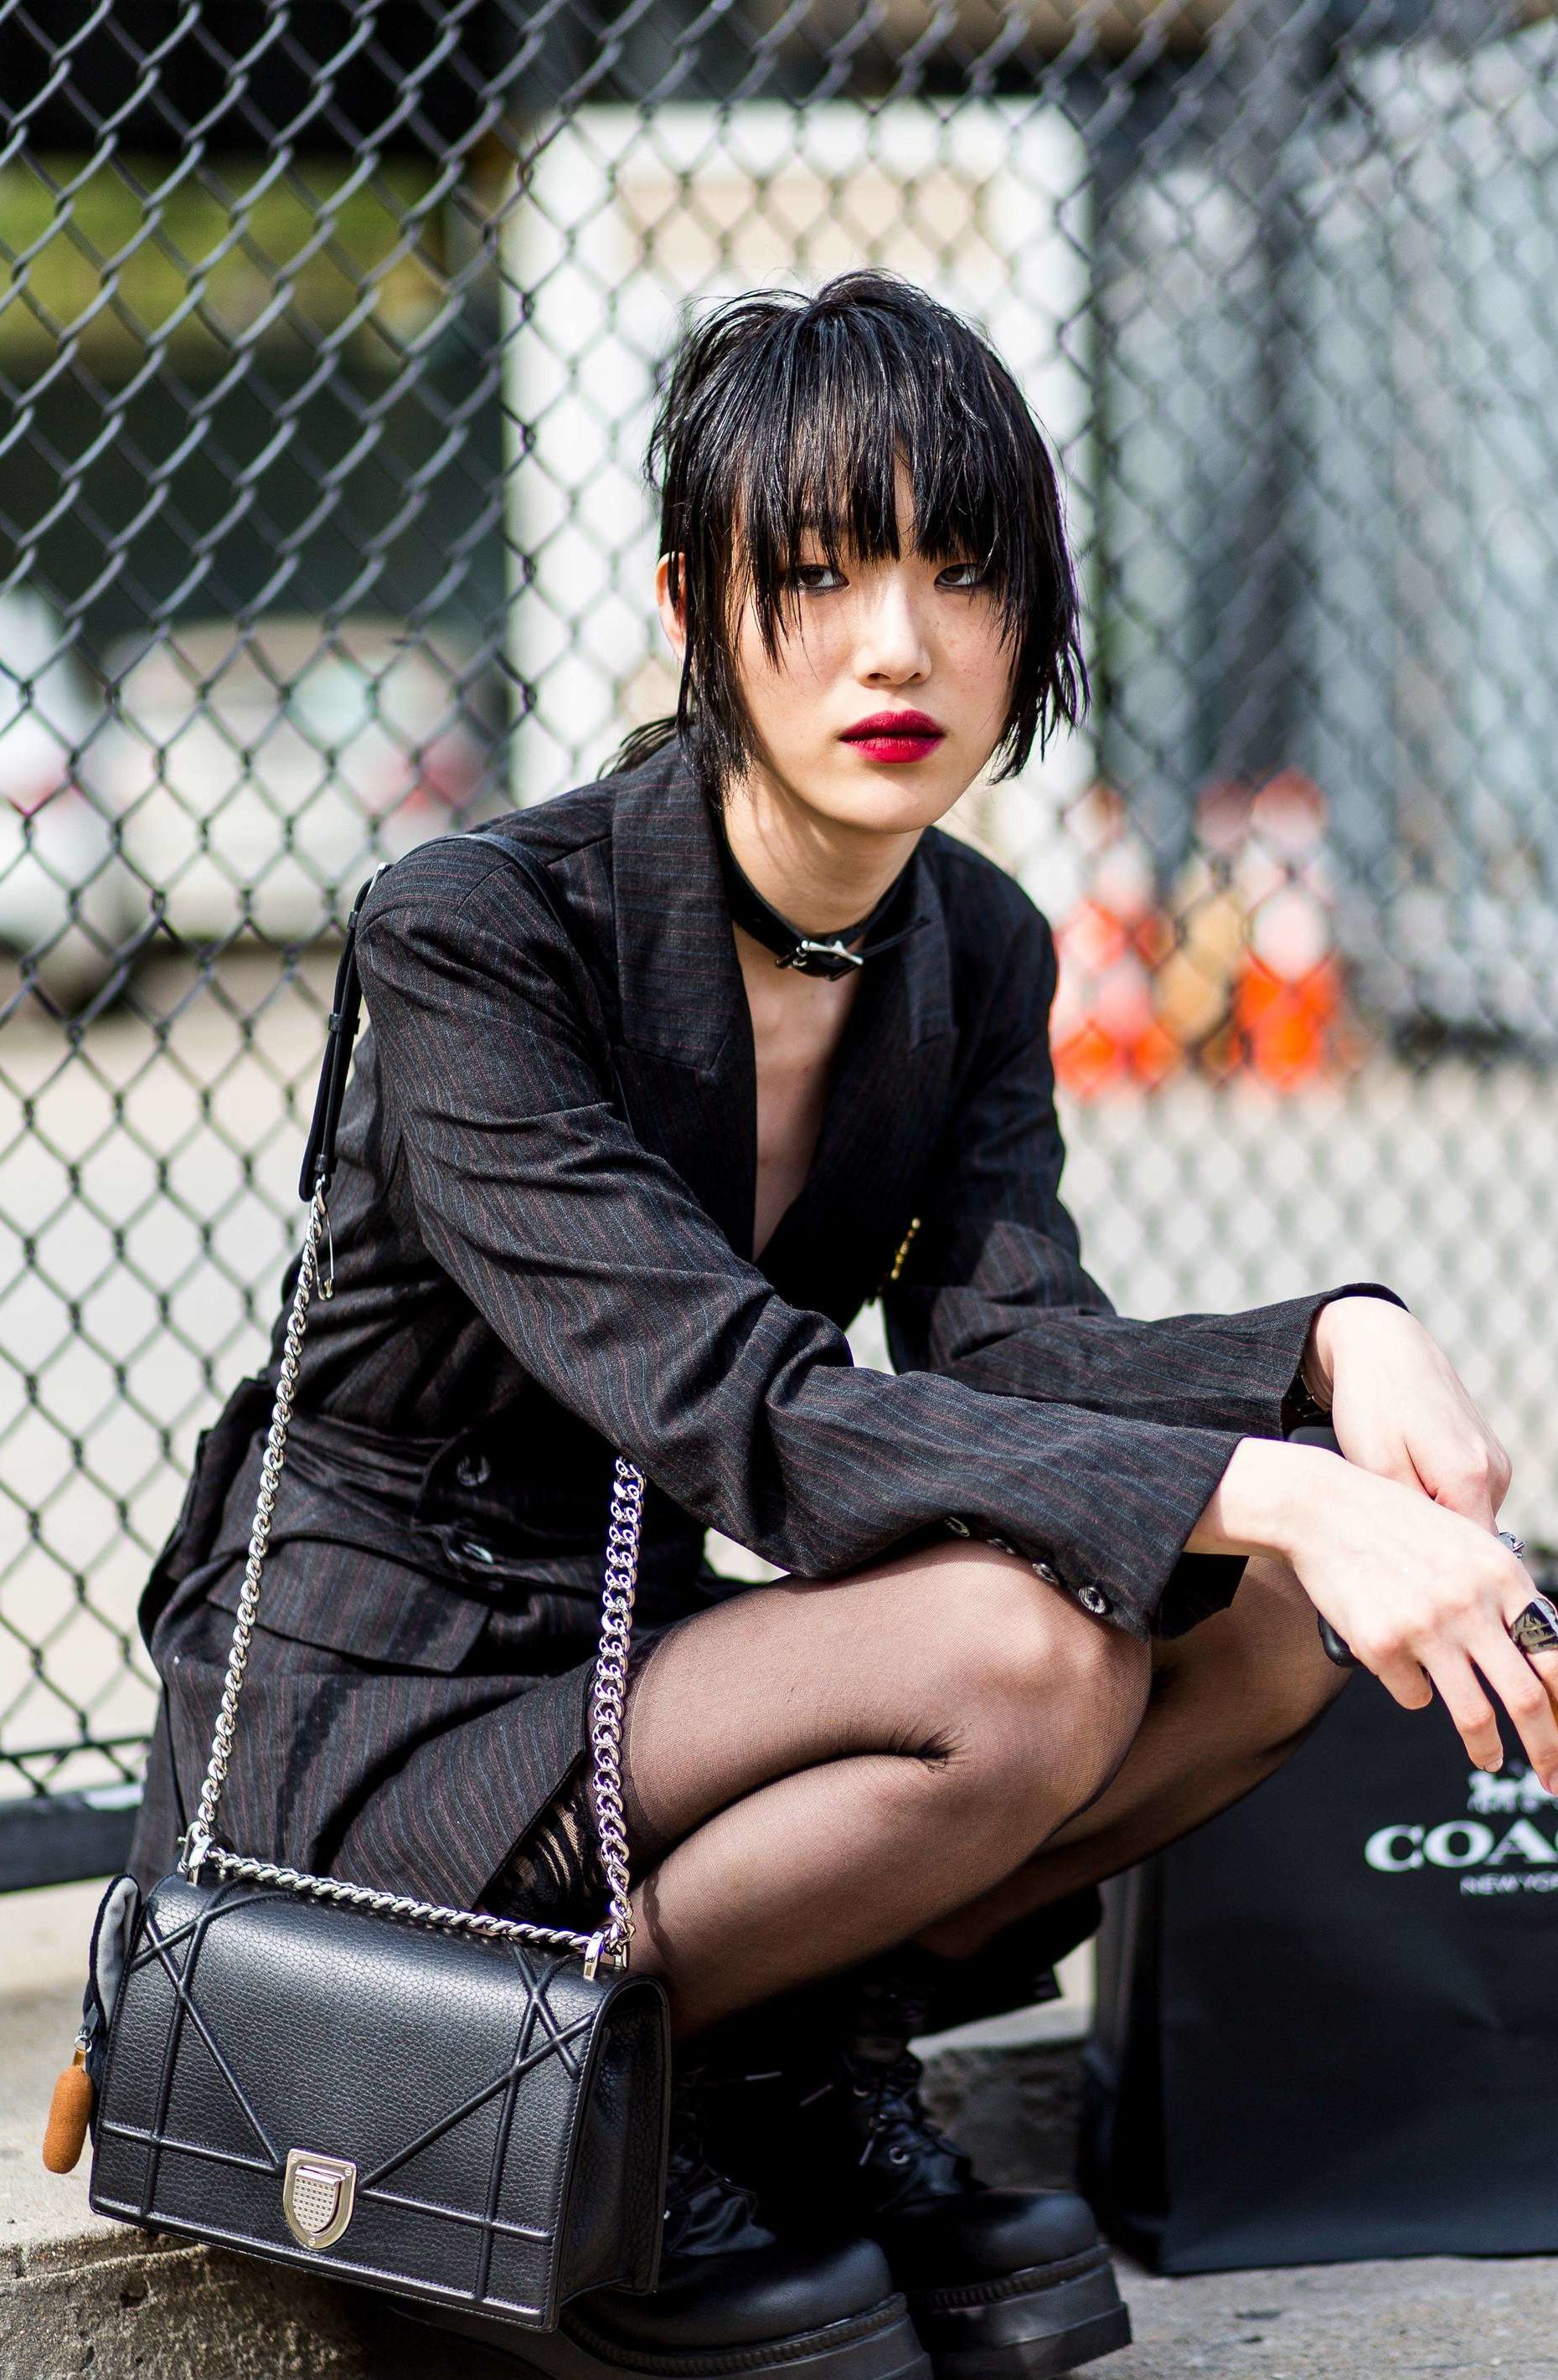 short asian hairstyles: woman with choppy shag hairstyle on the street